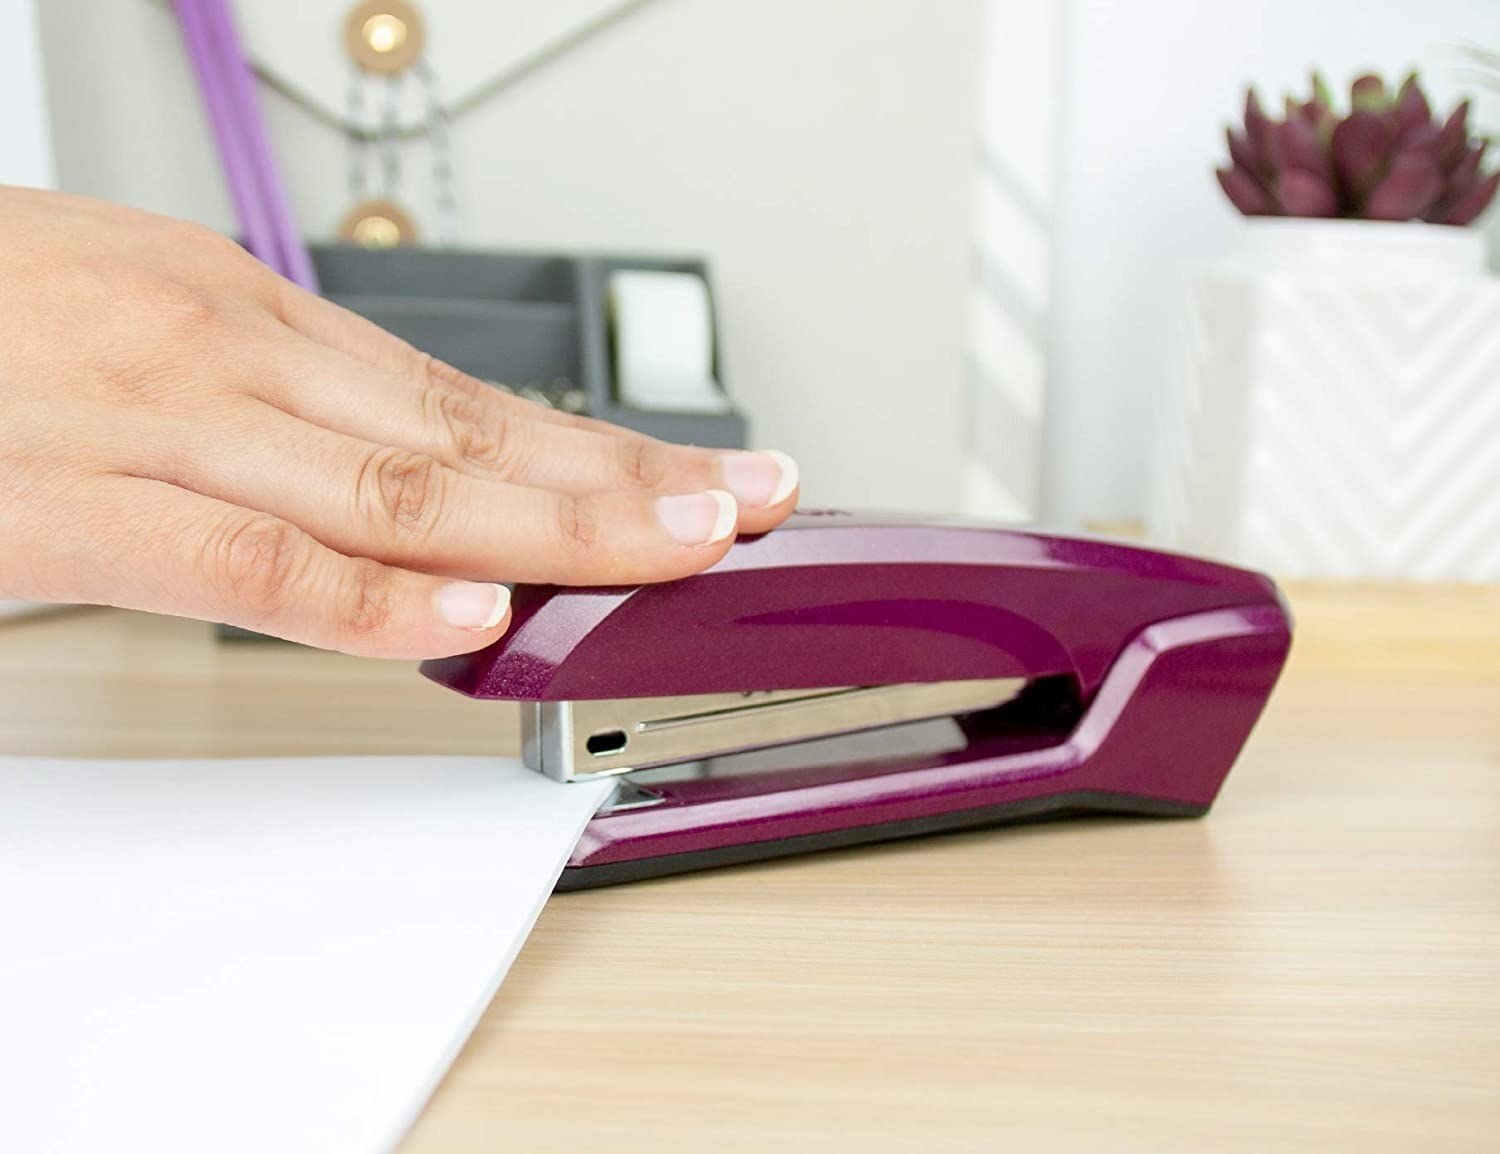 A hand pushes a stapler over a paper